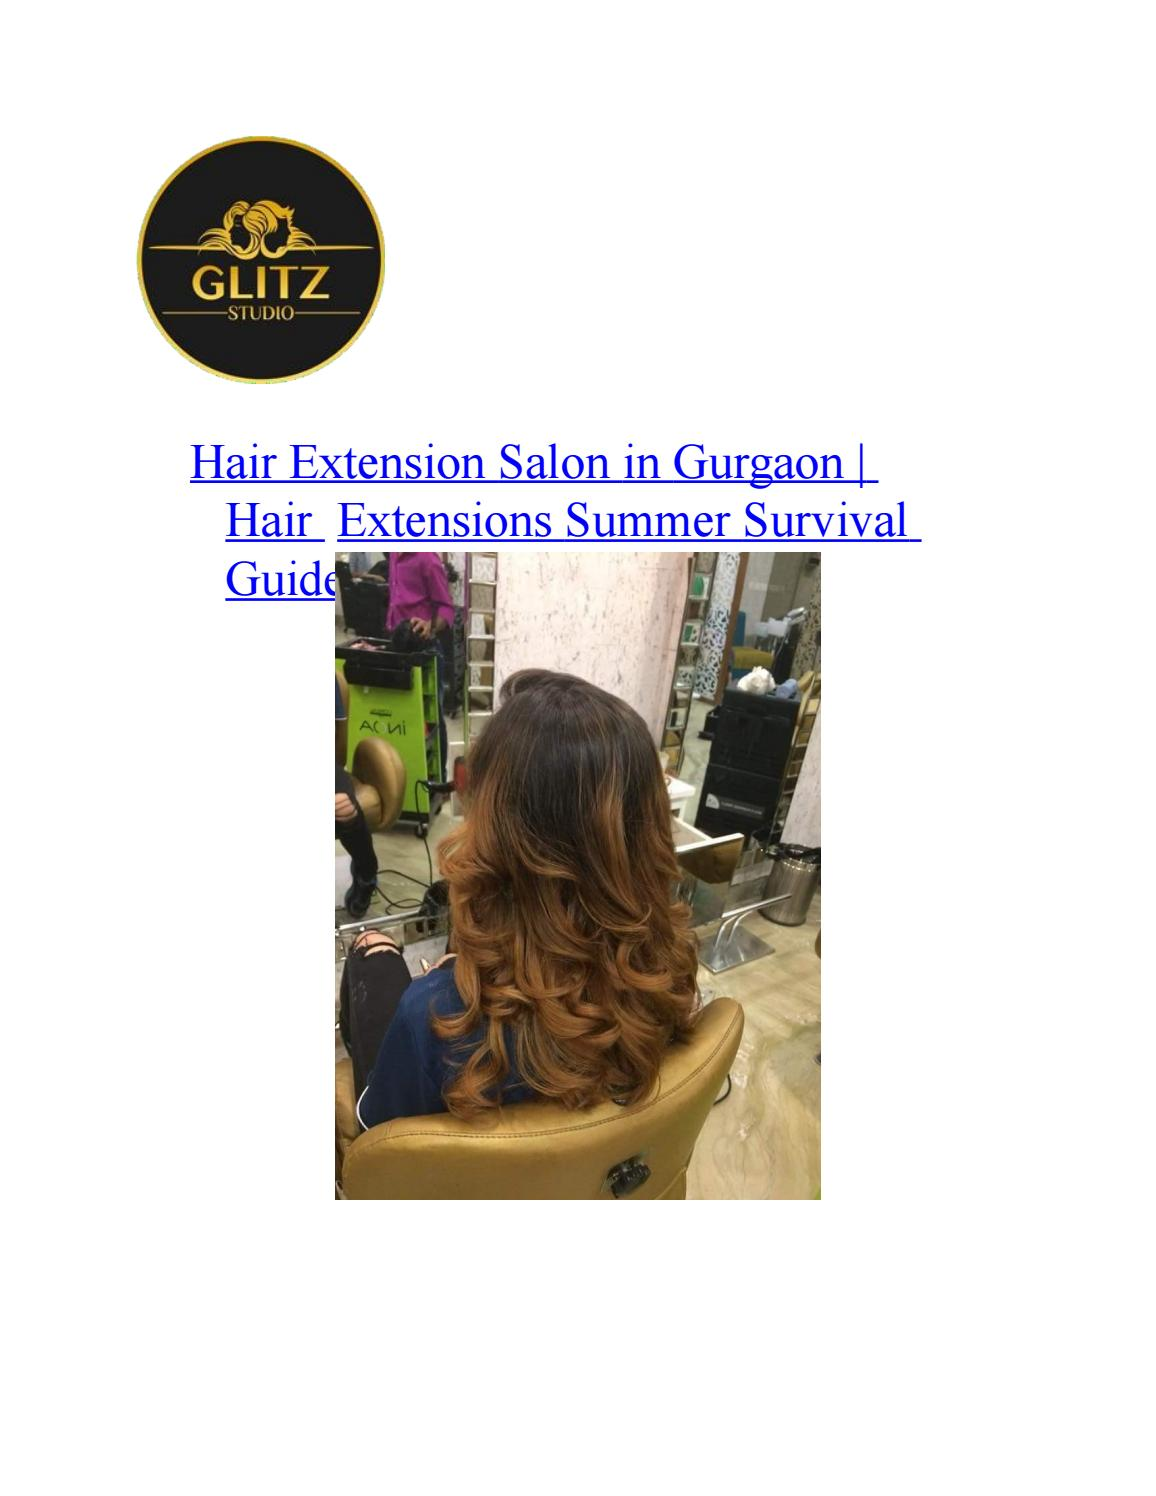 Hair Extension Salon In Gurgaon Hair Extensions Summer Survival Guide By Glitz Studio Issuu